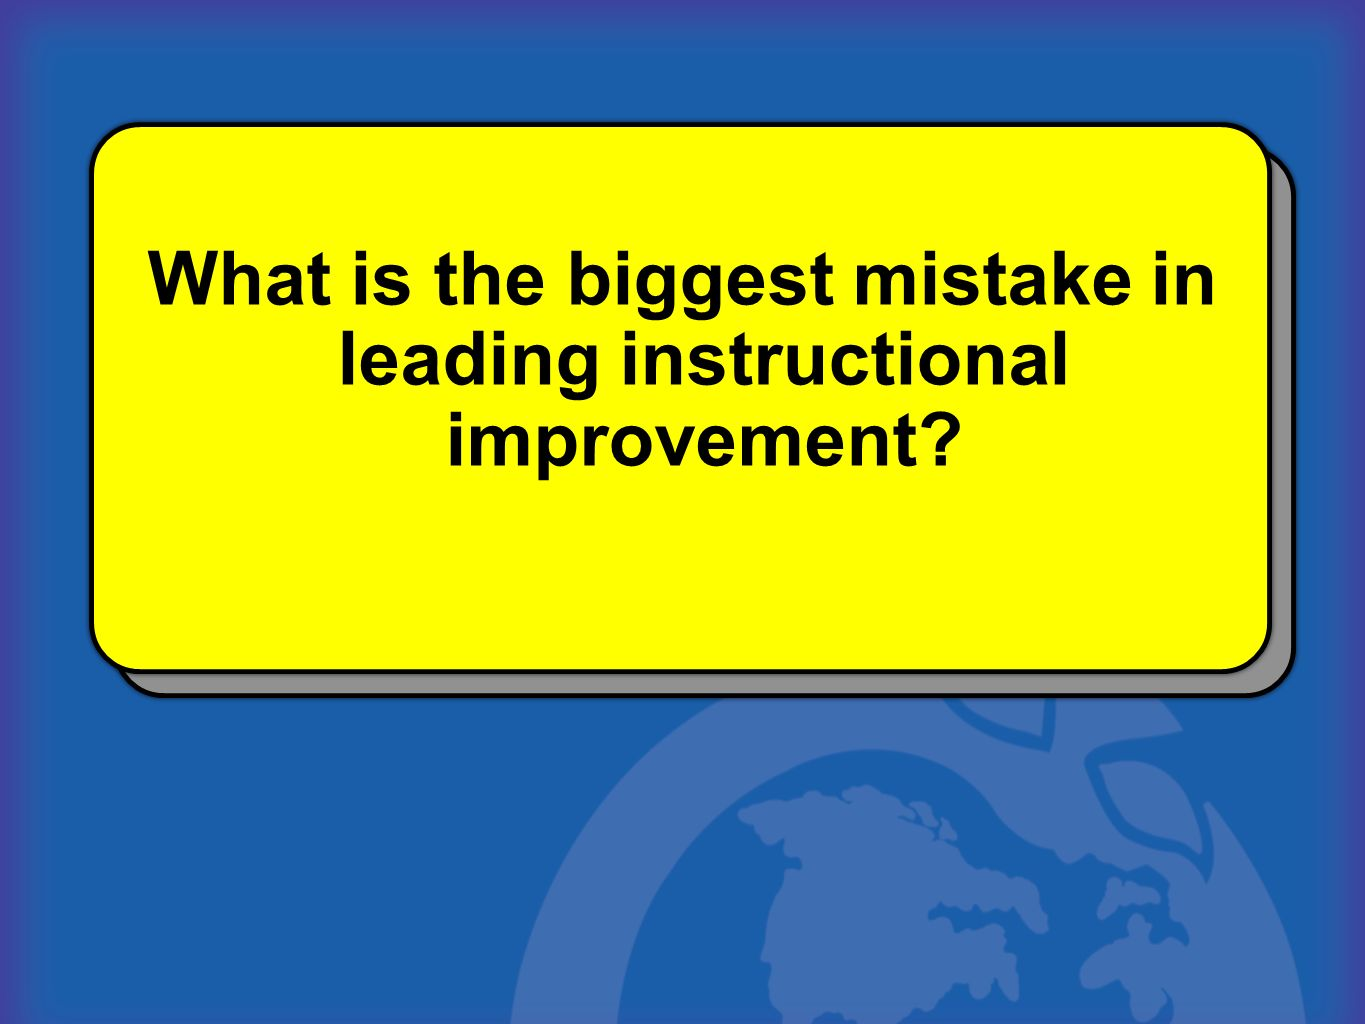 What is the biggest mistake in leading instructional improvement